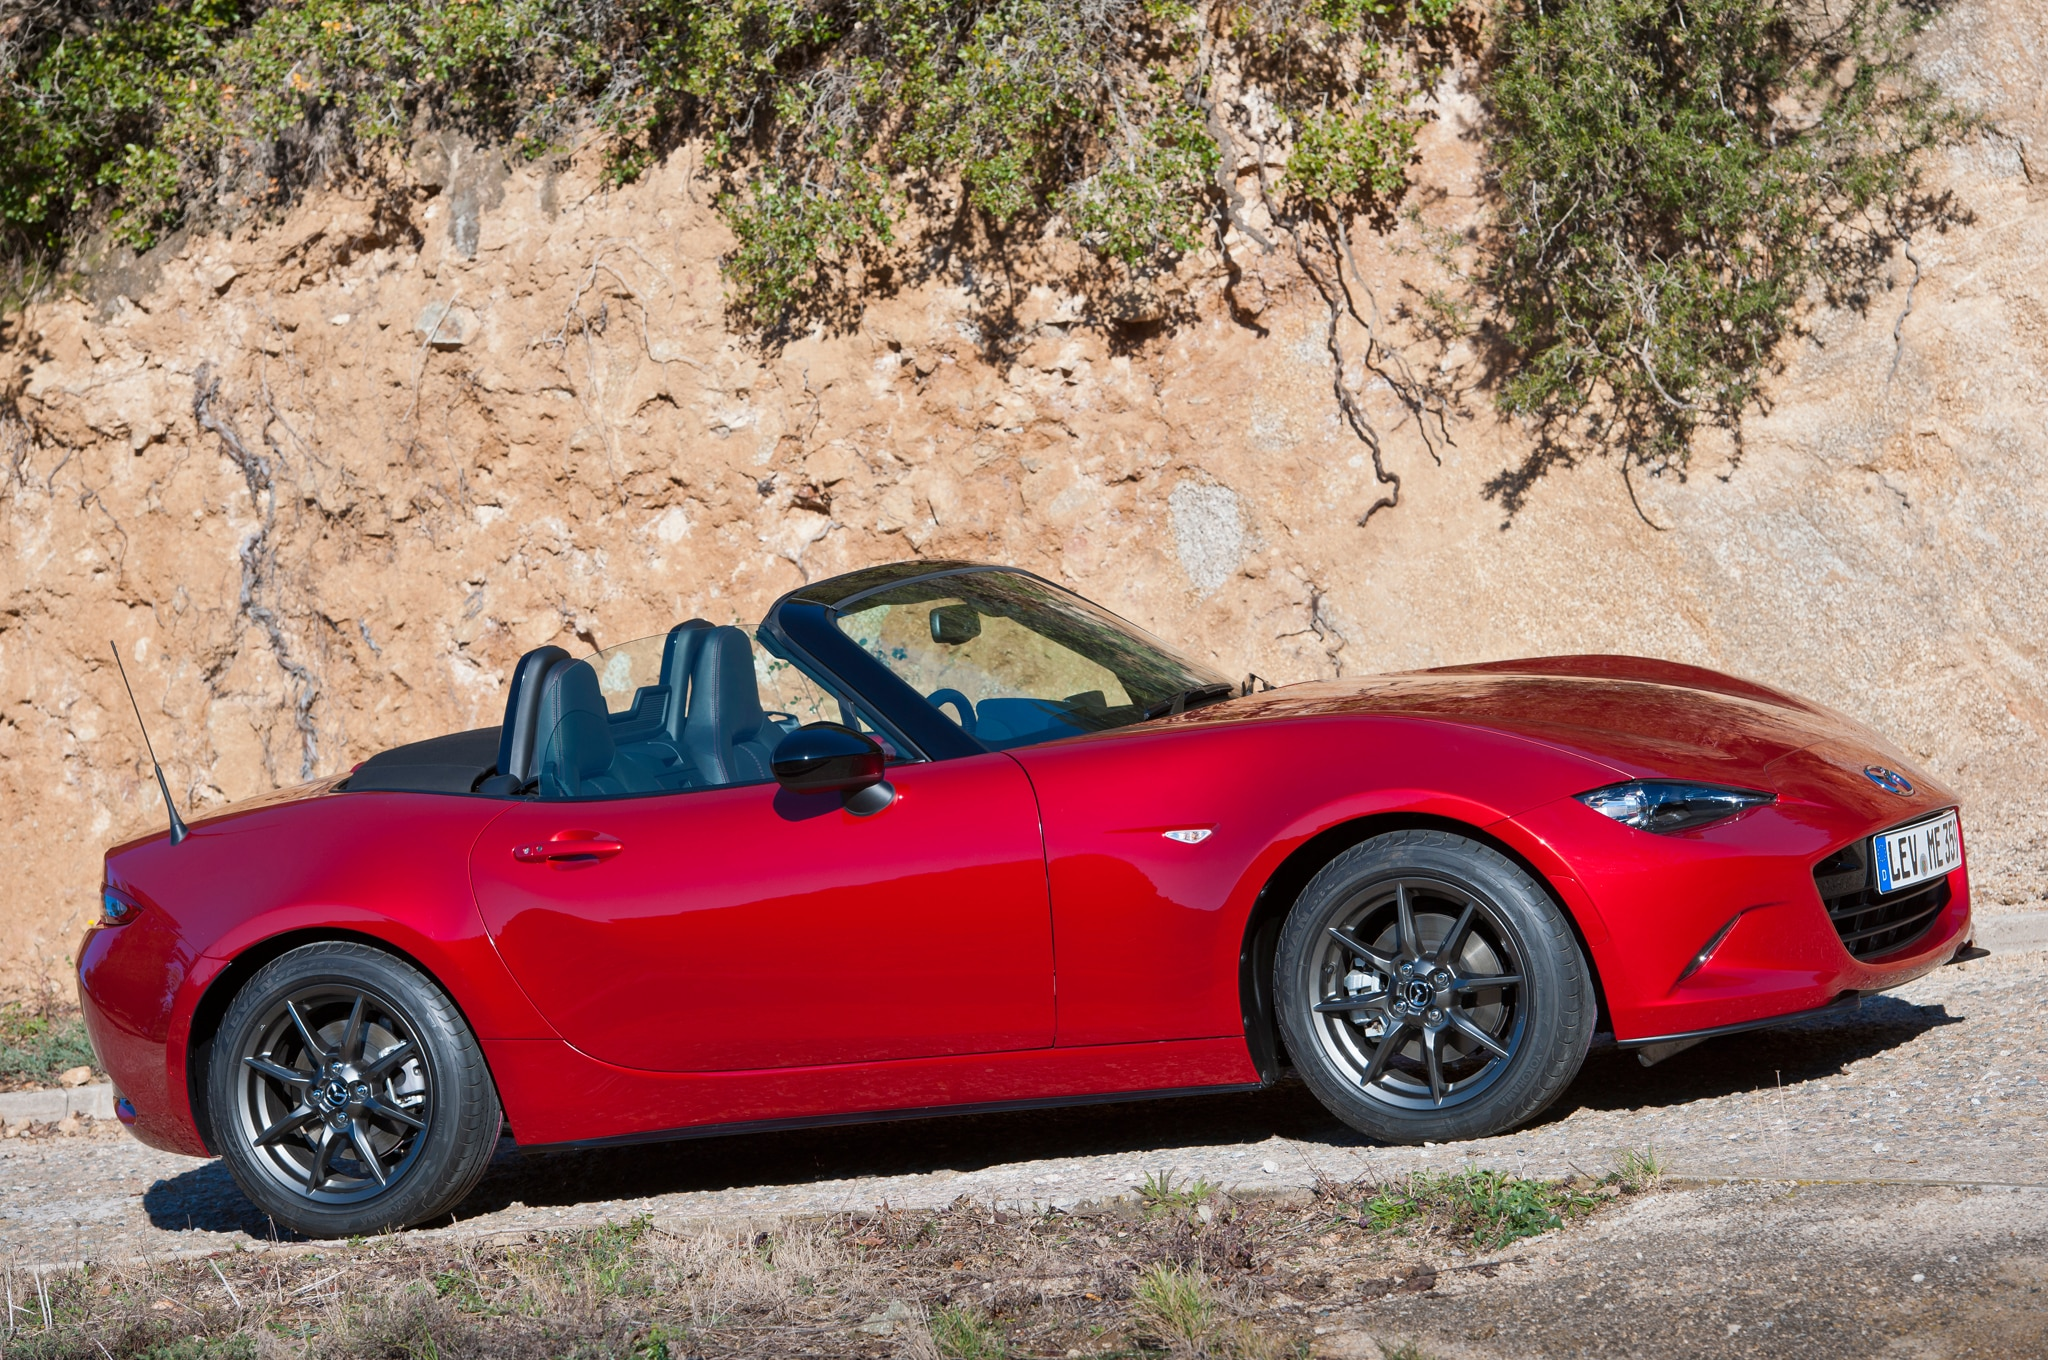 2016 mazda mx 5 miata sheds 148 pounds compared to previous generation. Black Bedroom Furniture Sets. Home Design Ideas